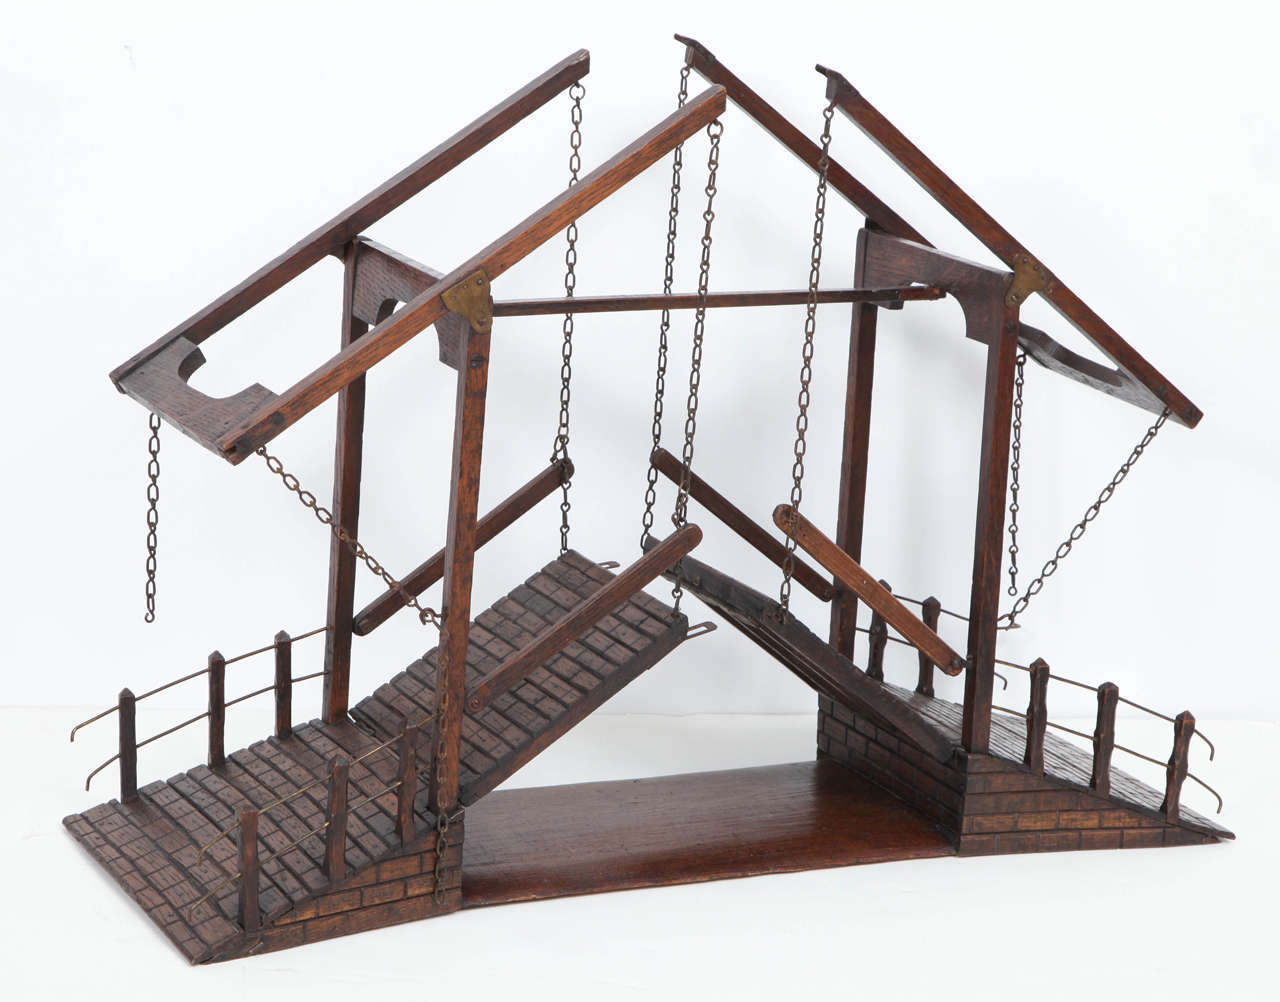 Dutch architectural model bridge at 1stdibs for Architecture models for sale